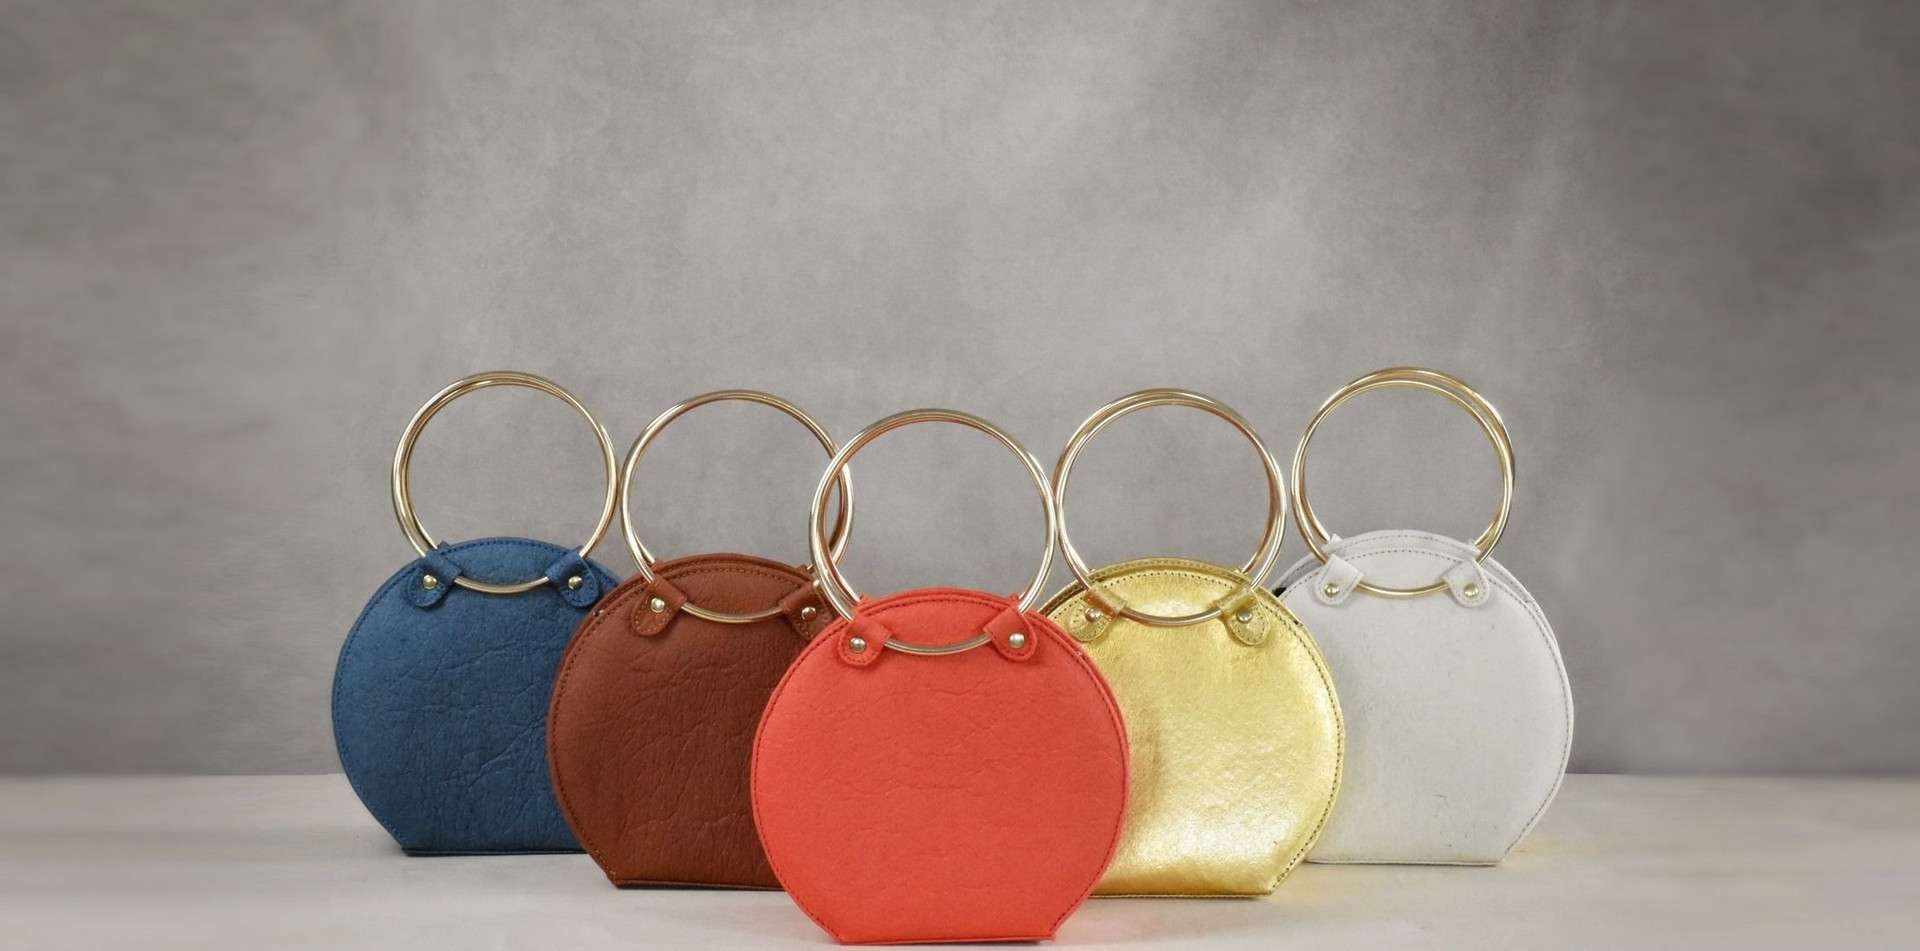 Fashion & Style Winner: Mini Circle Bag by Ceibo